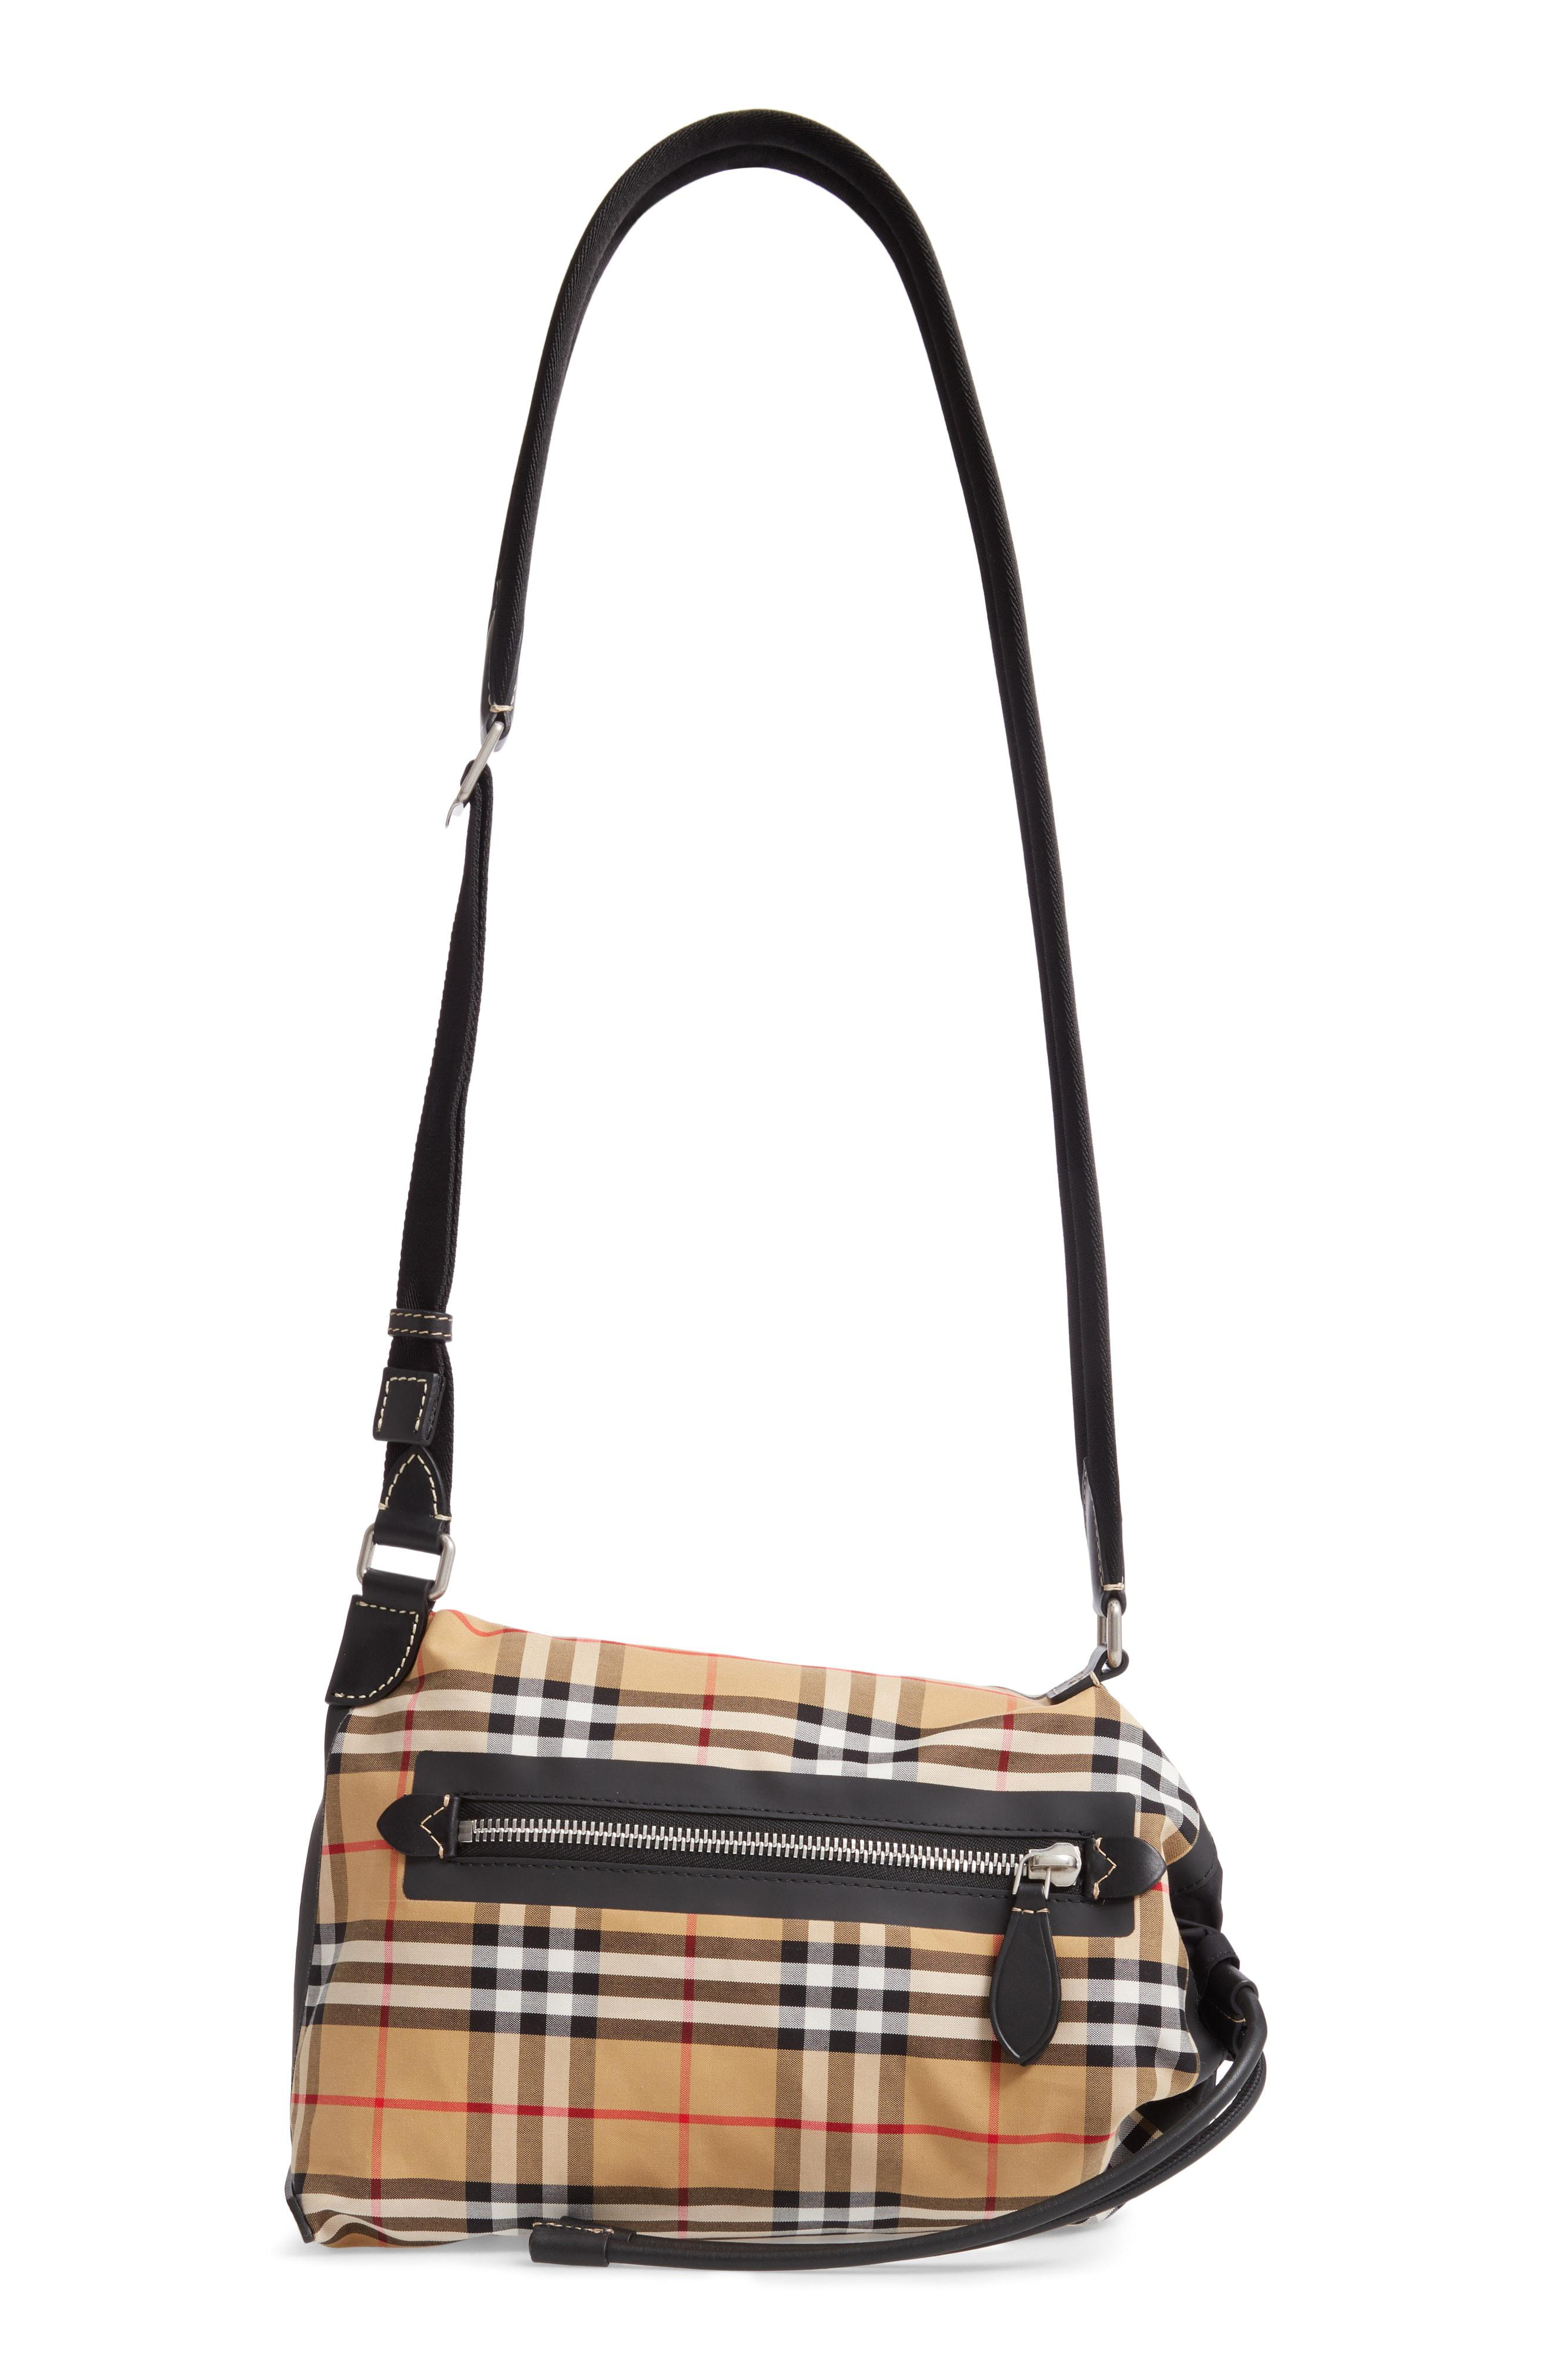 ccf91be25ed1 Burberry. Women s Small Vintage Check Sailing Duffel Sling Bag -